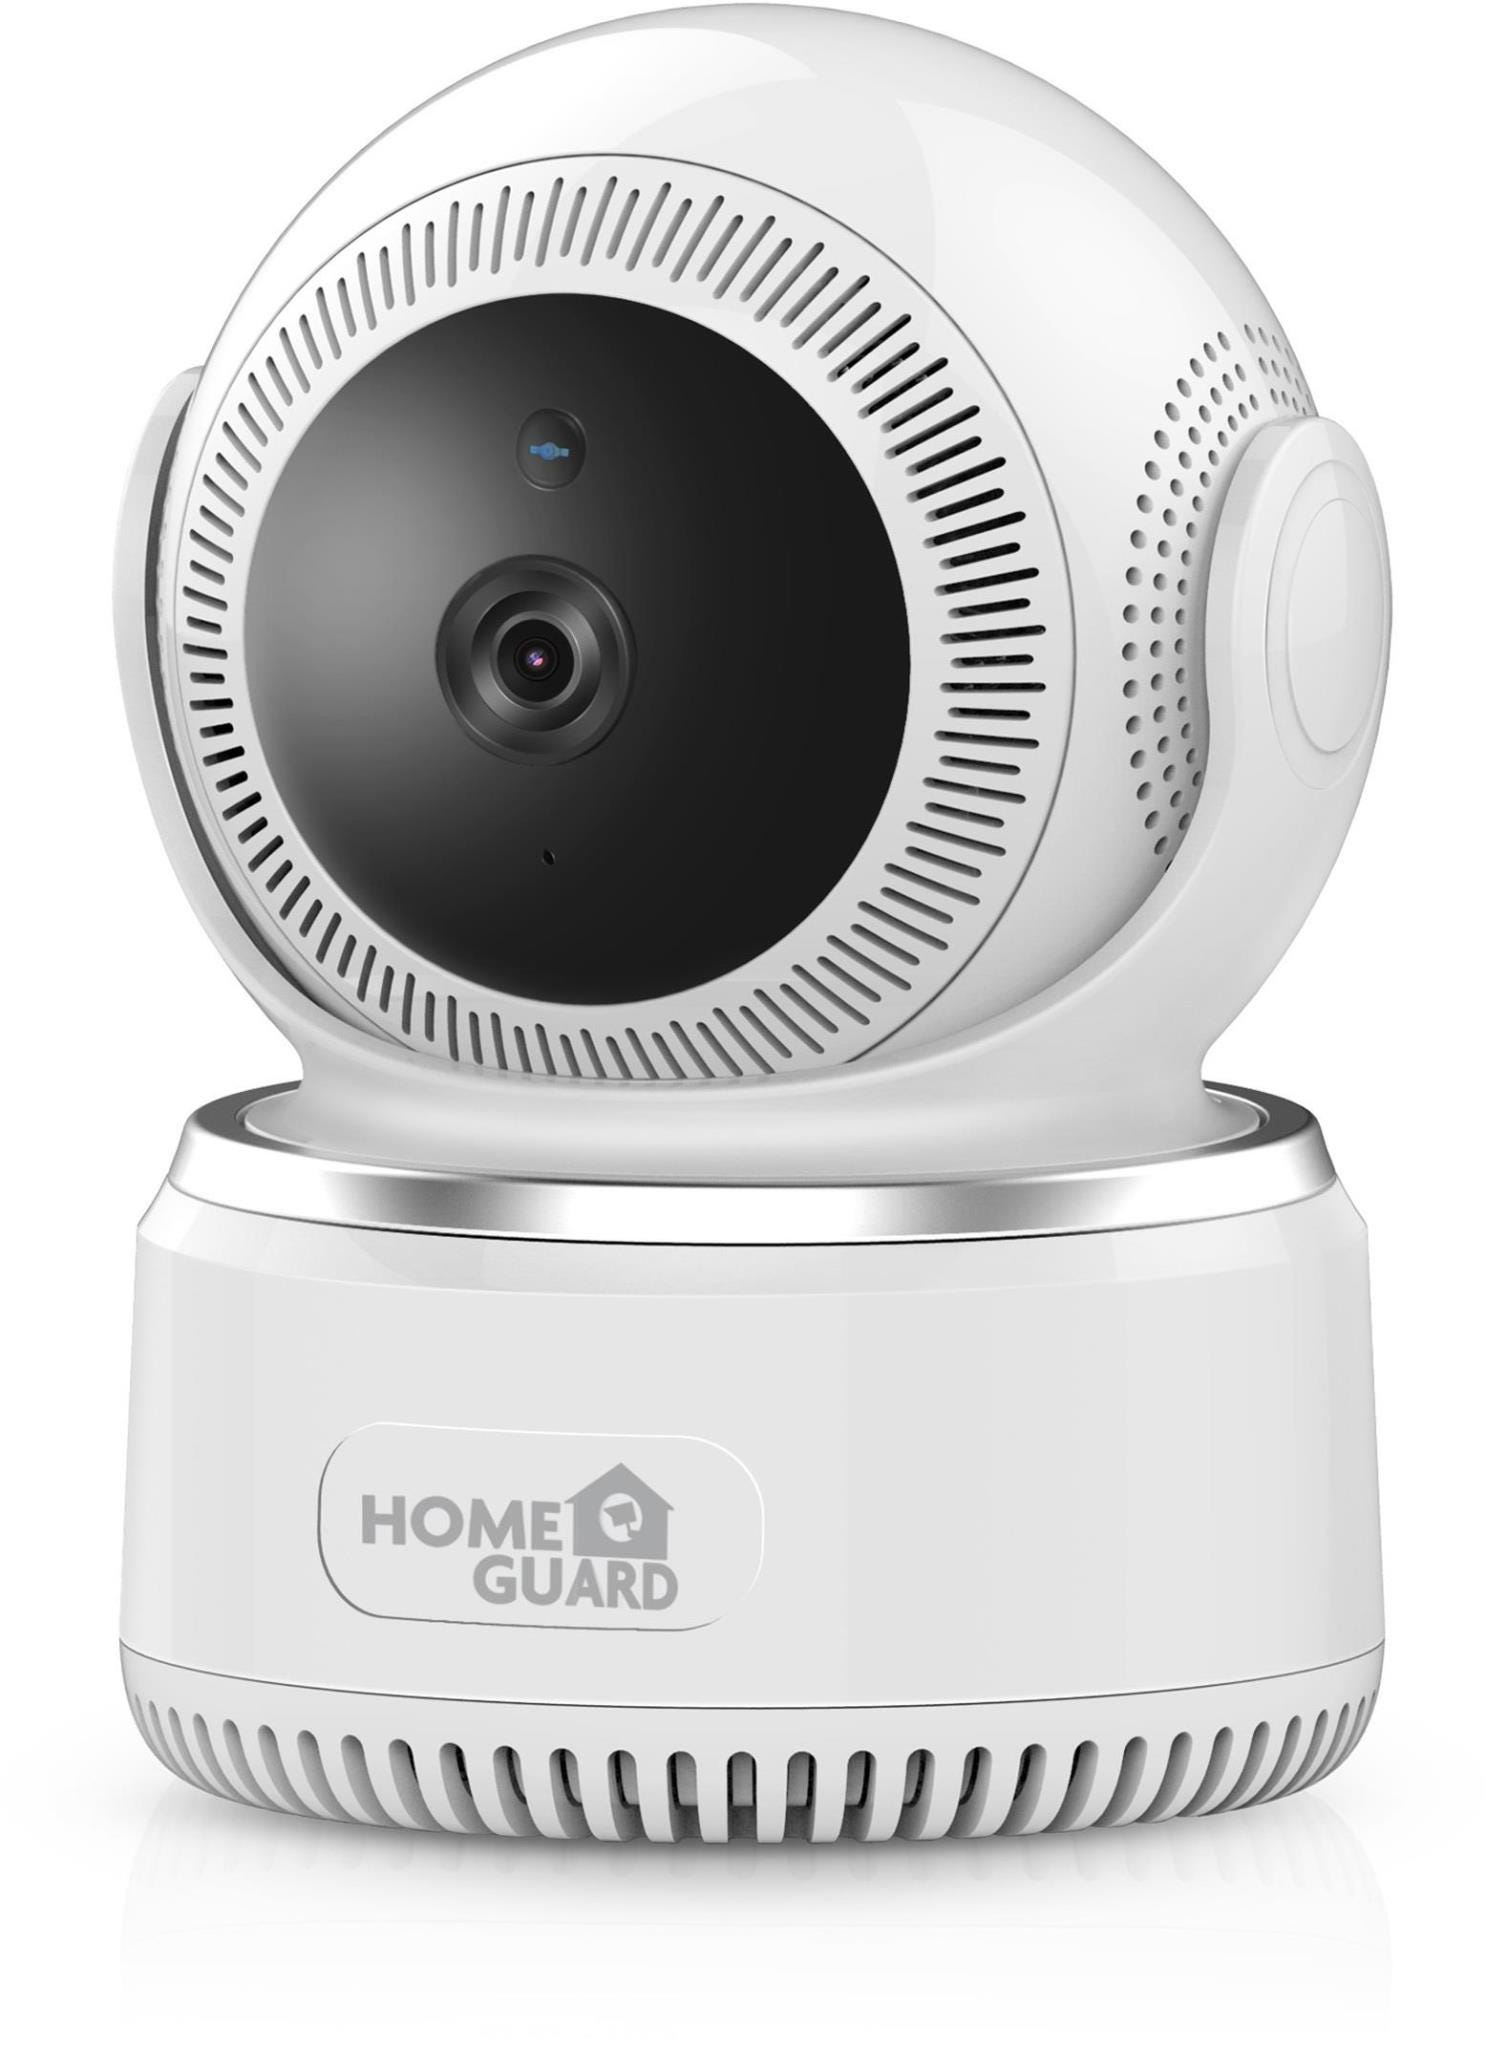 HomeGuard HGWIP-812 Pan    Tilt Indoor Wireless Full HD Night-Vision Security Camera - White